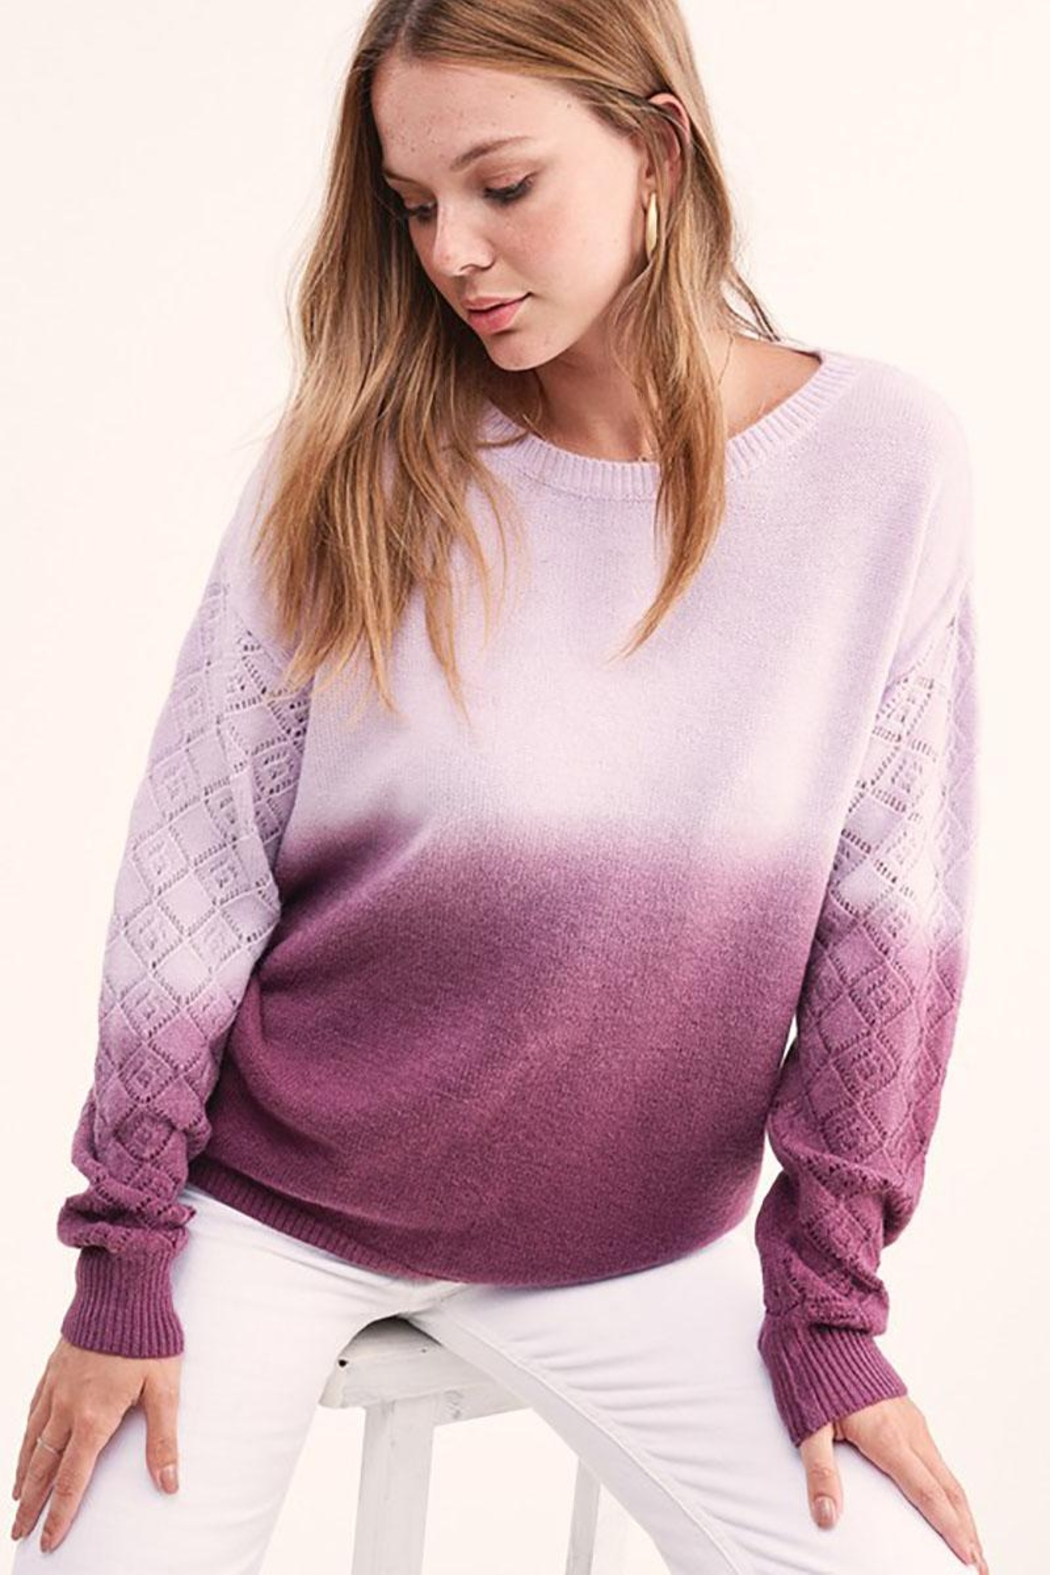 LA MIEL  Dip Dye Gradient Knit Pullover Sweater - Front Full Image